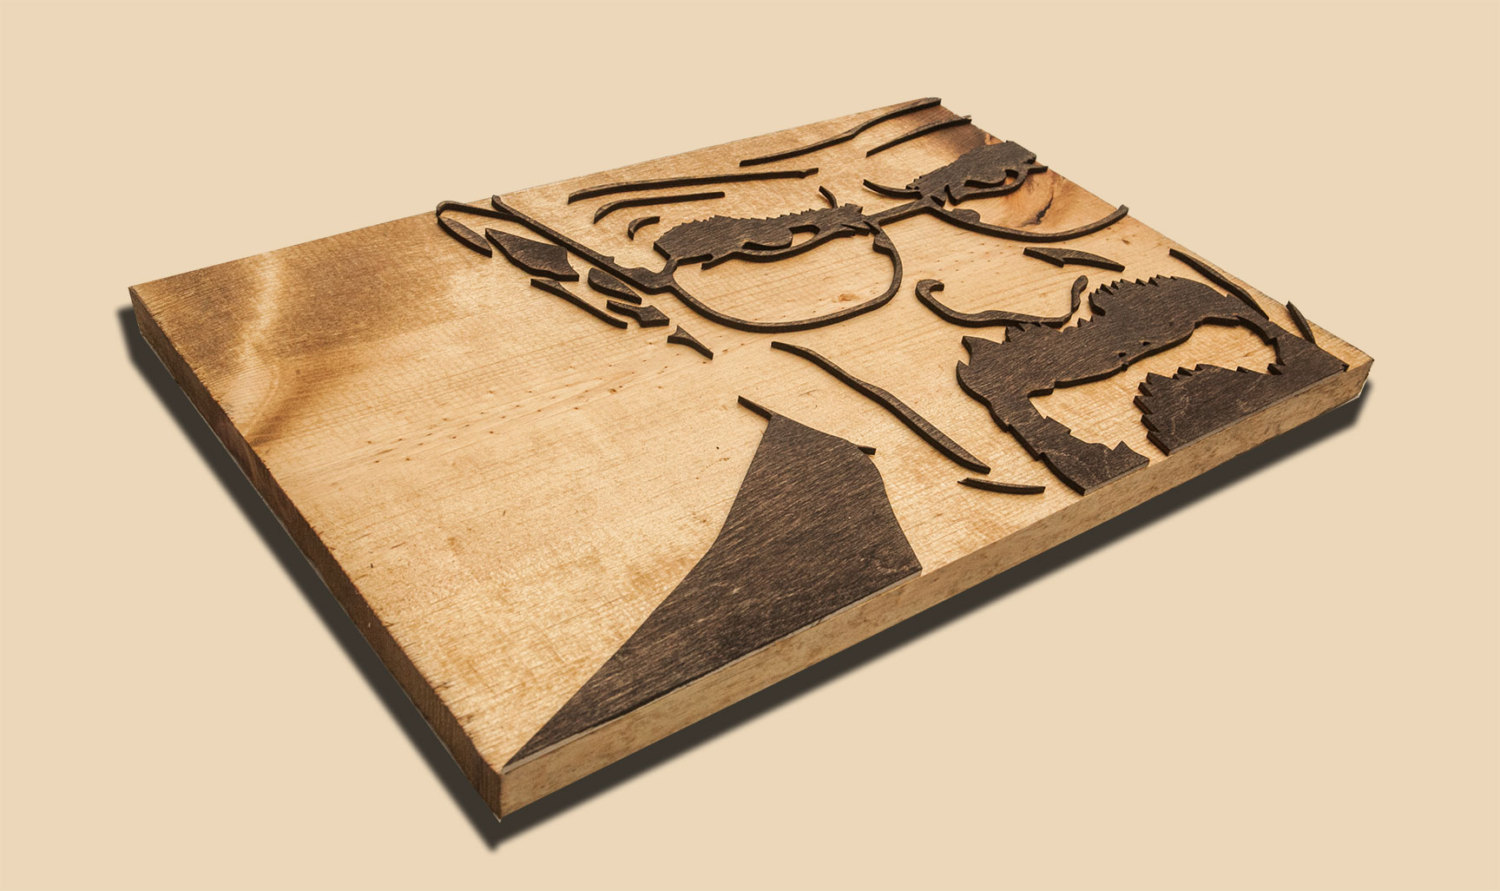 Breaking Bad 3D Sculptured Wall Hanging Wooden Art. Walter